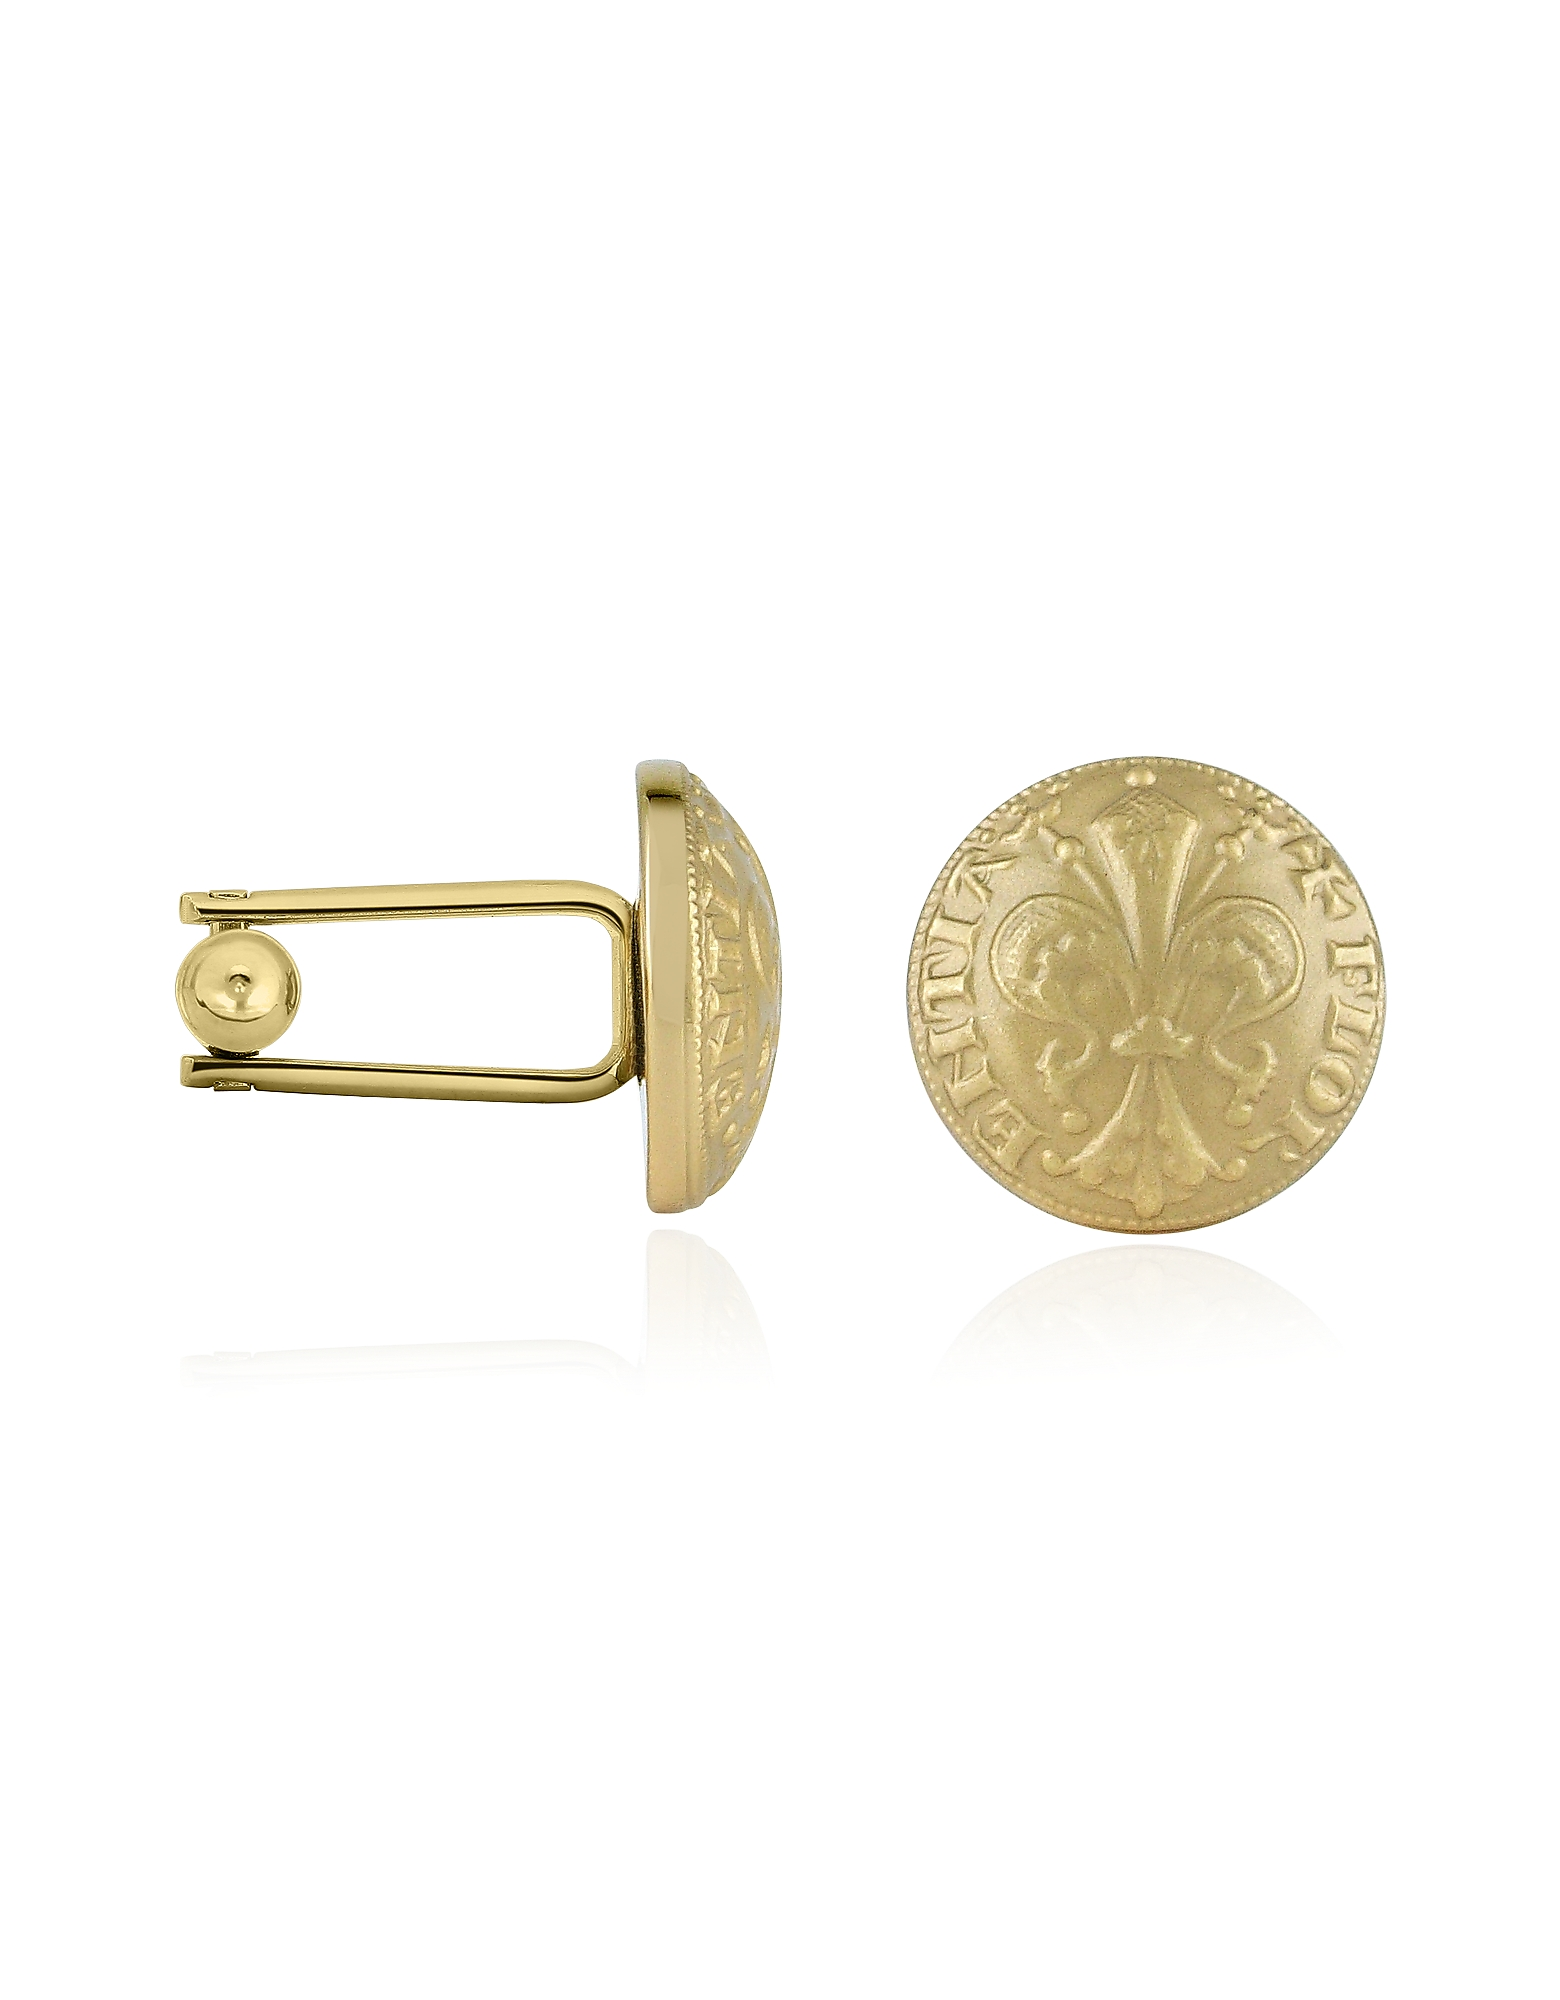 Forzieri Cufflinks, Fleur-de-Lis Gold-Plated Cufflinks